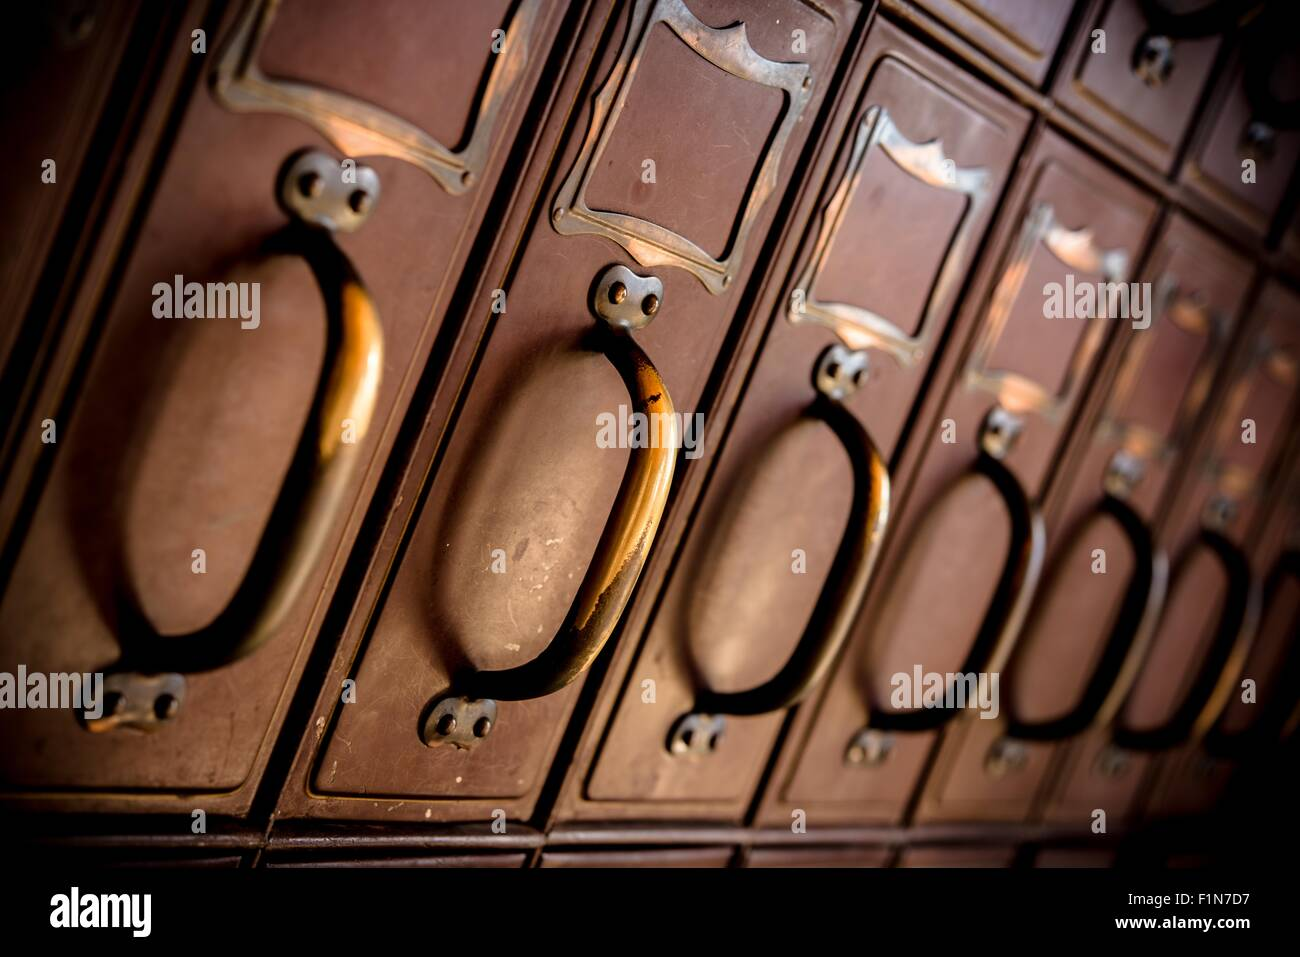 Aged Vintage American West Postal Office  Boxes. - Stock Image